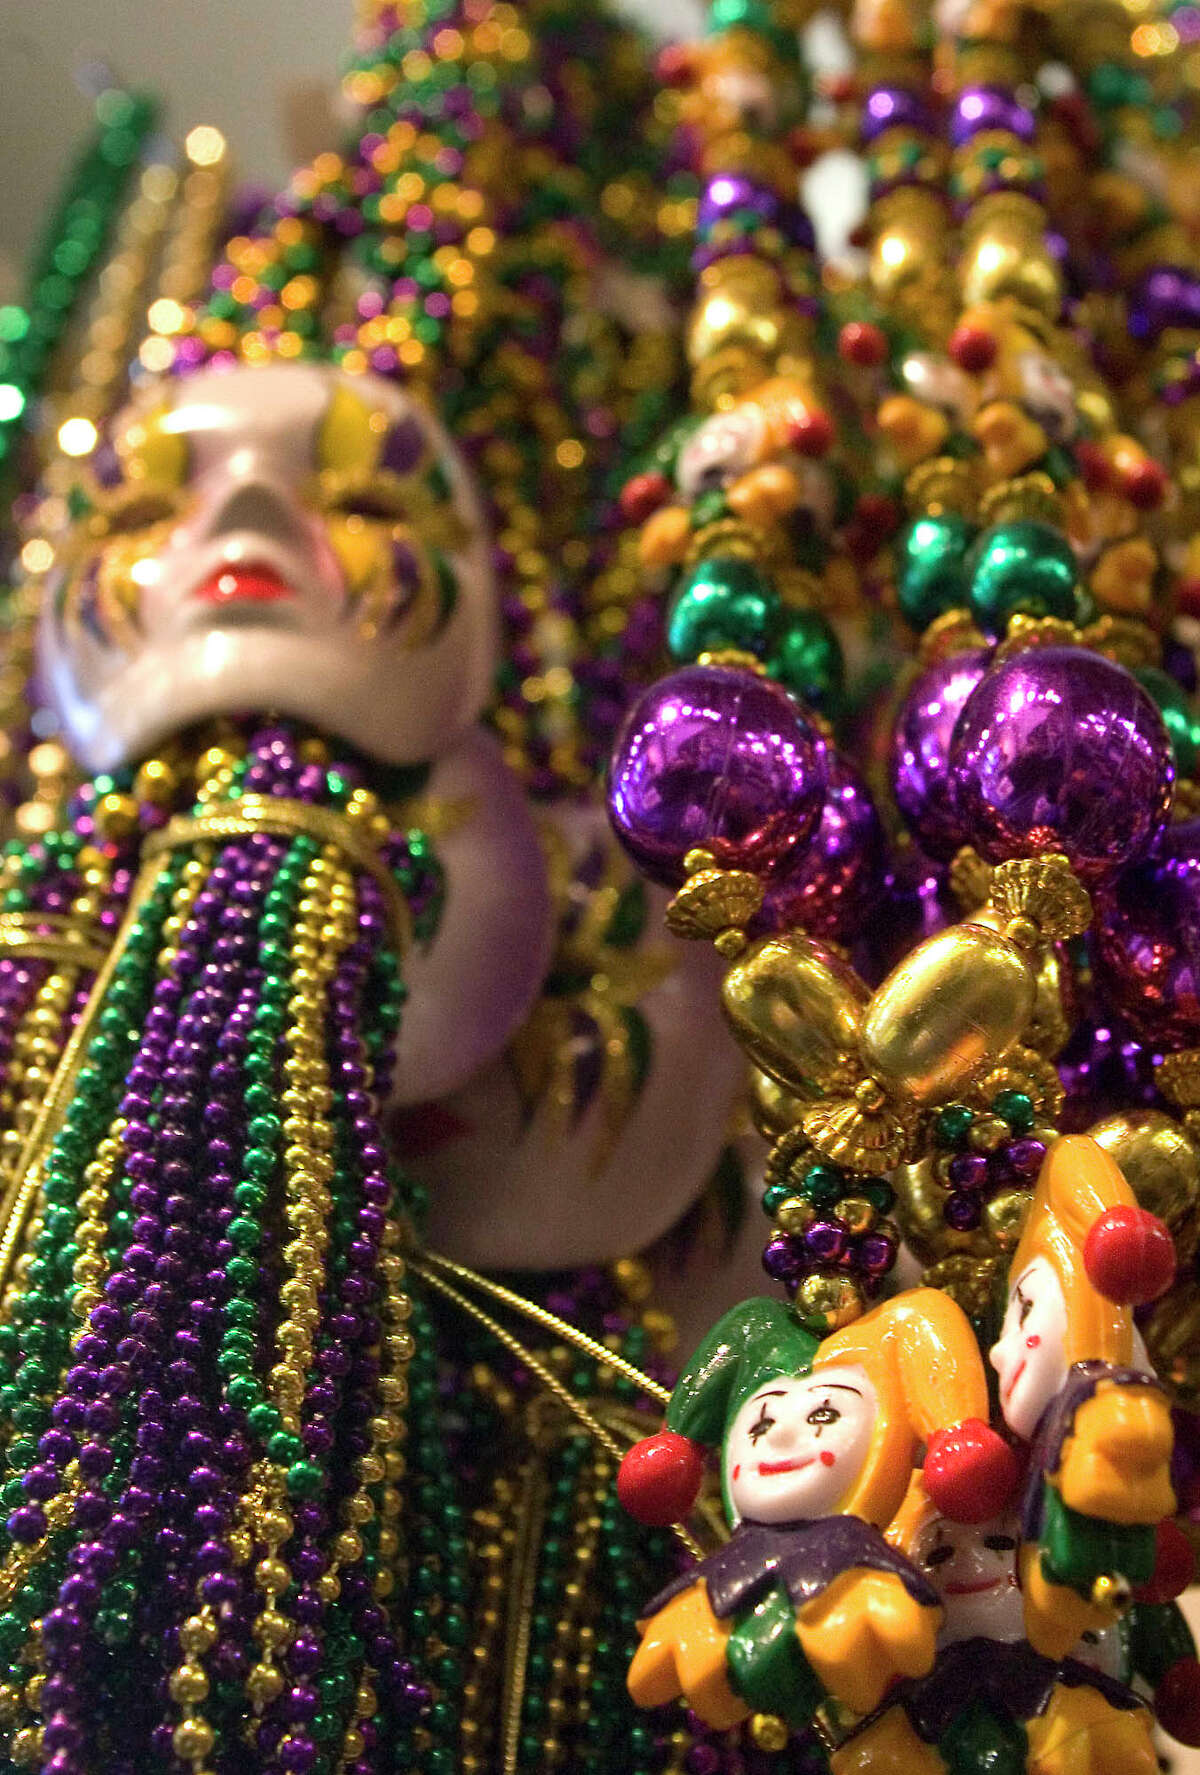 Beads will be plentiful in Galveston during the upcoming weeks of Mardi Gras.